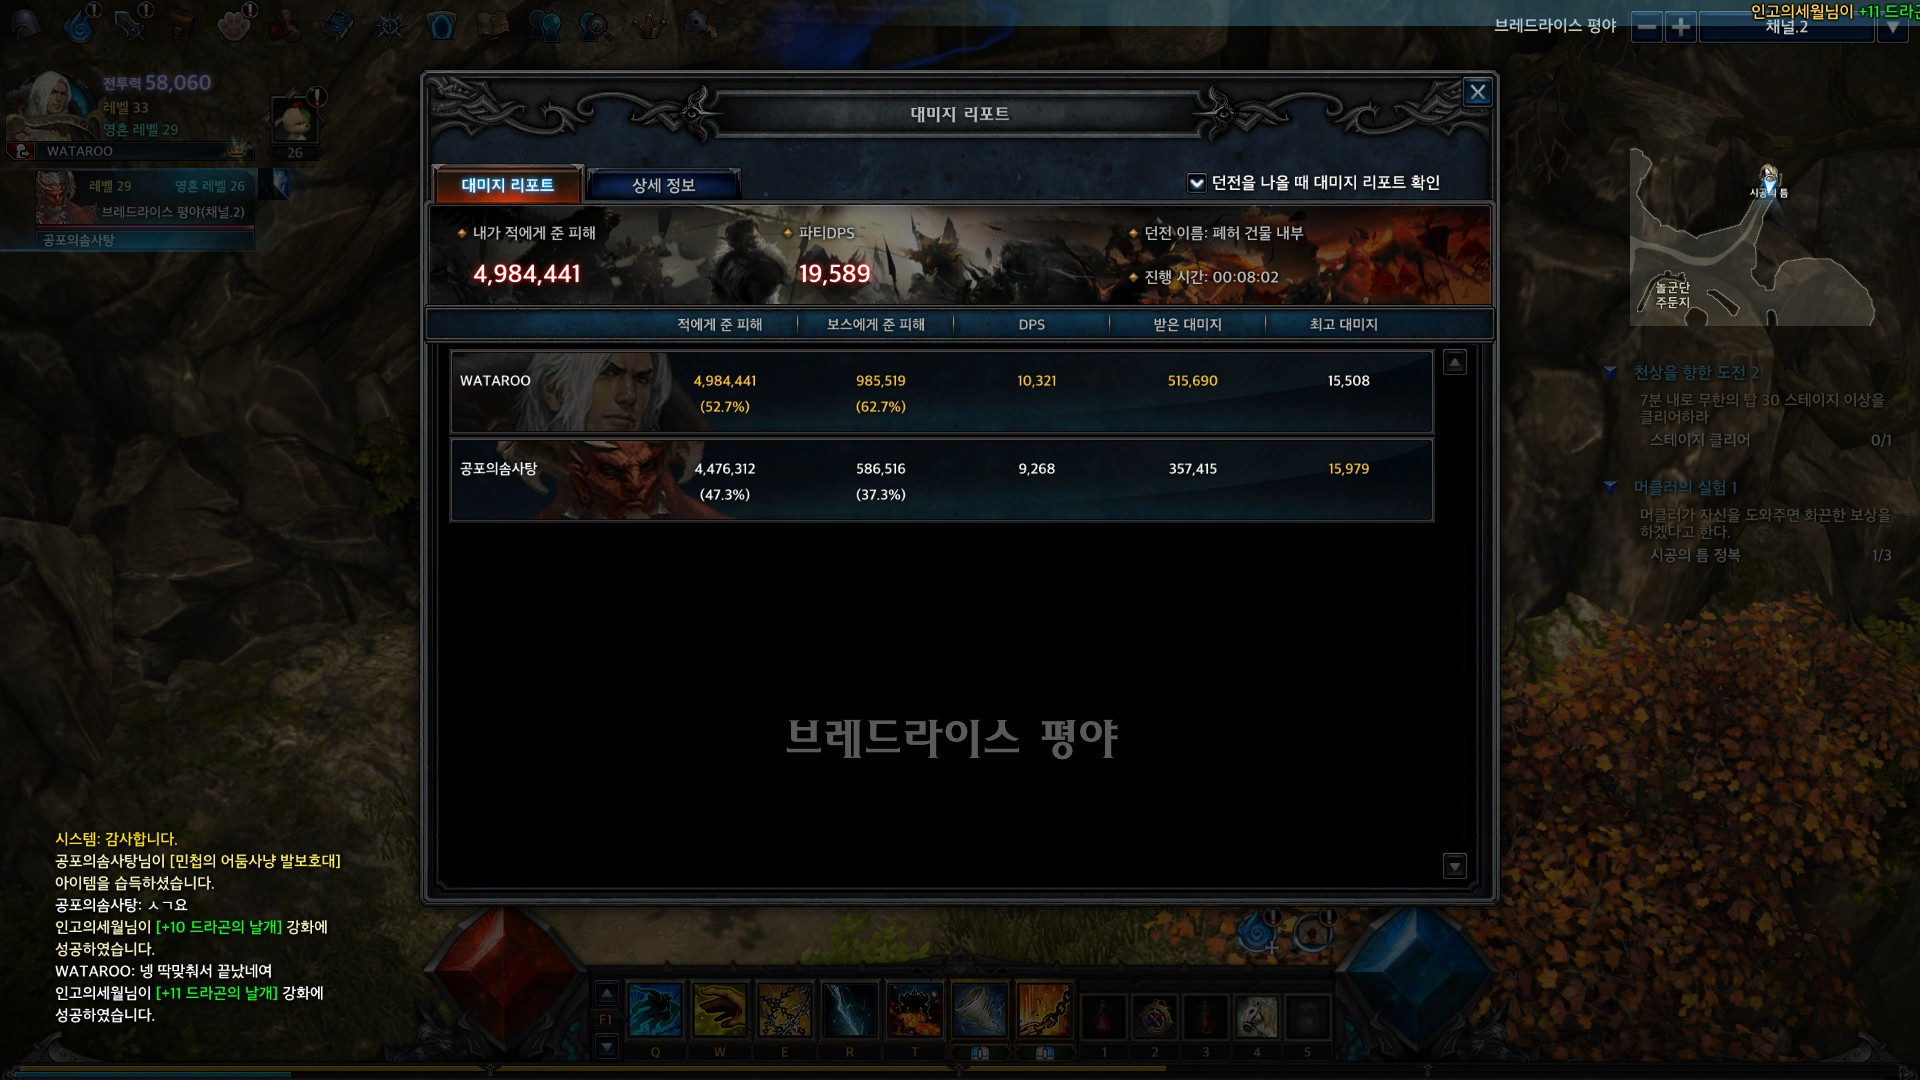 수정됨_ScreenShot00005 (2).jpg